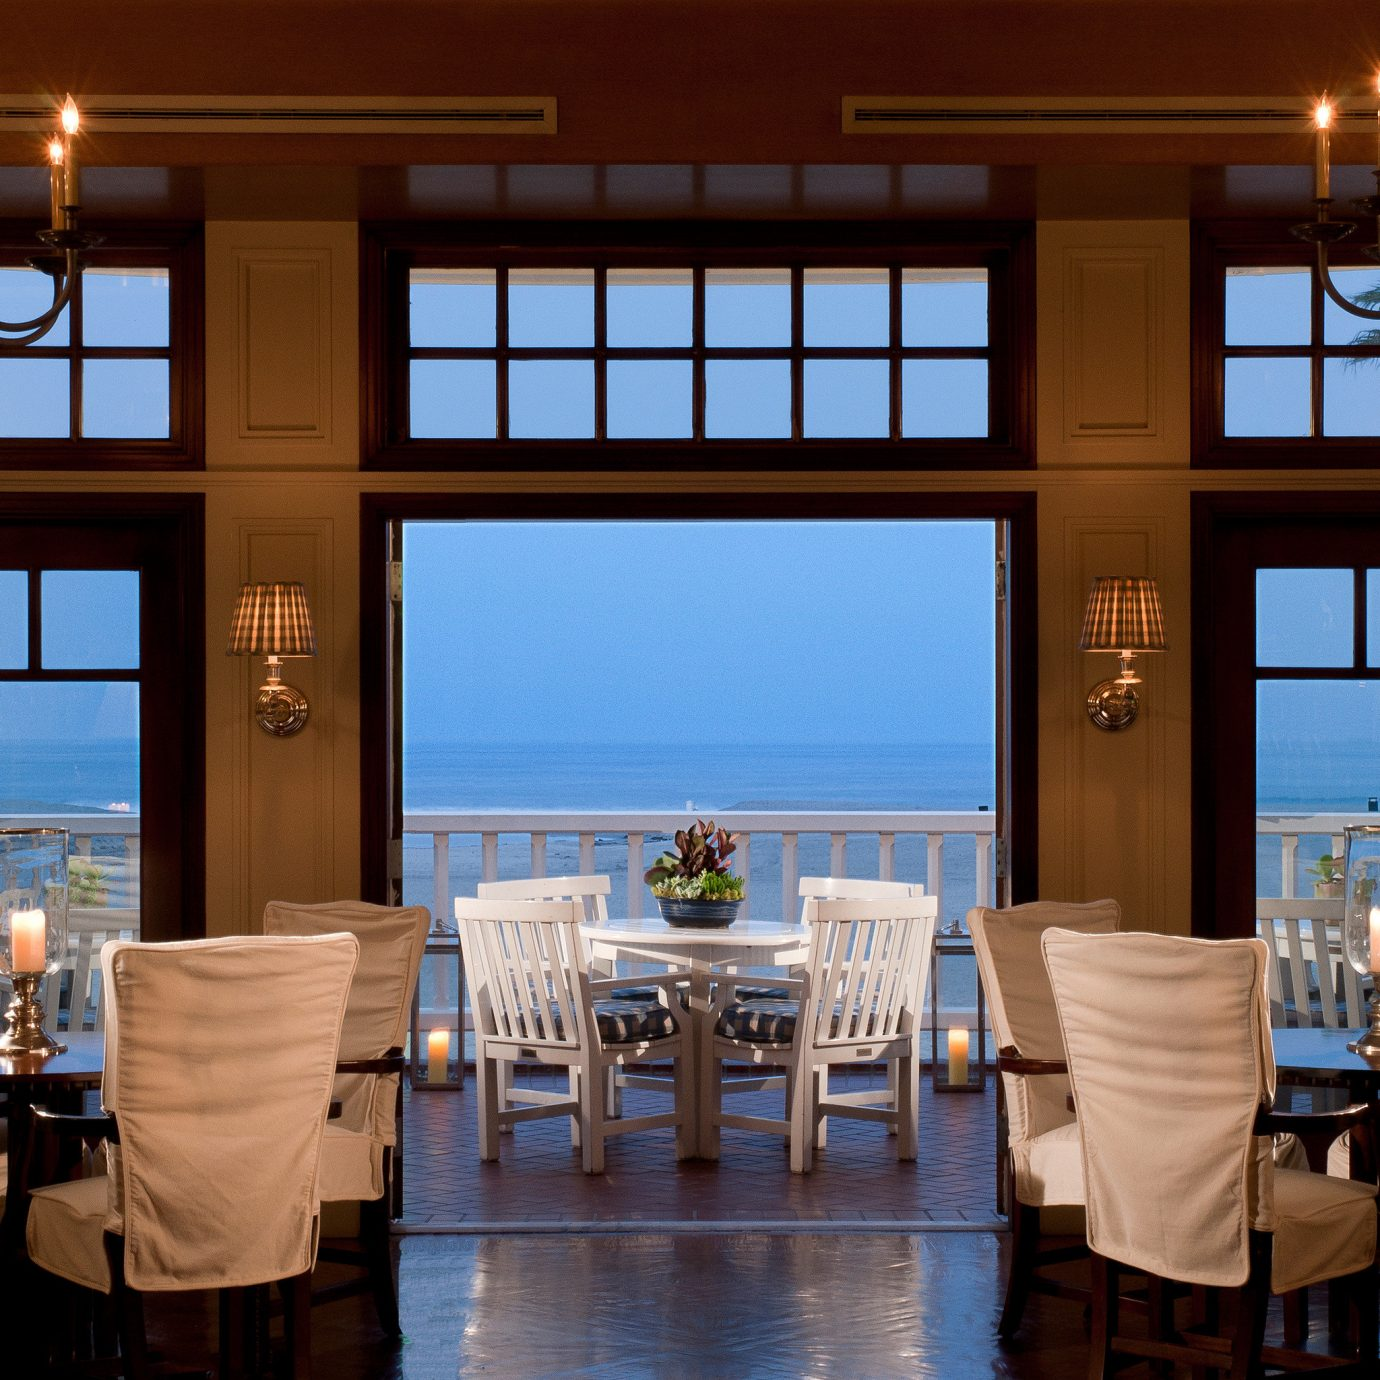 Bar Dining Drink Eat Hotels Luxury Modern restaurant Resort home overlooking Island